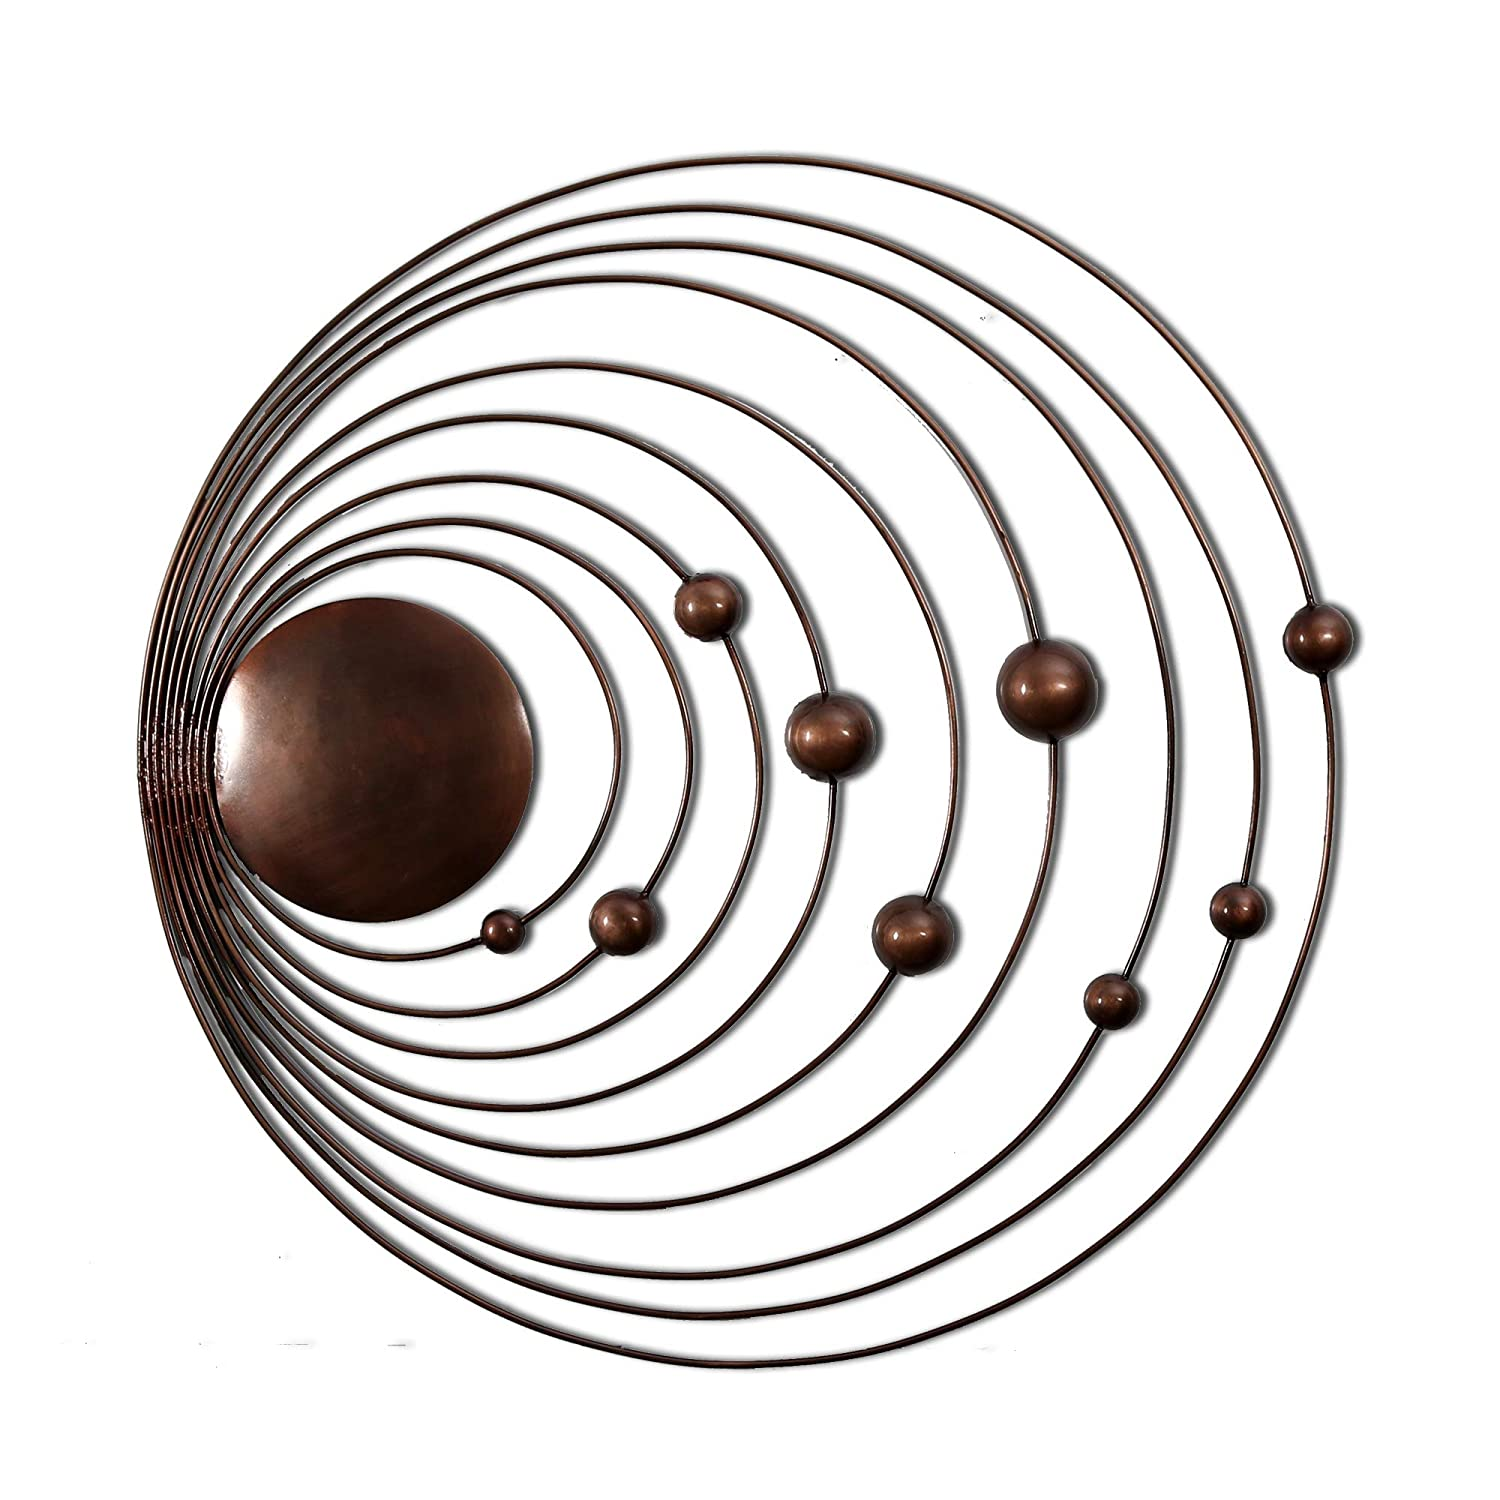 Sistema solare del sole e 9  pianeti Handmade metal Wall Art Sculpture decorazione da parete e da appendere (73, 7  x 73, 7  x 2, 5  cm) 7 x 73 7 x 2 5 cm) Inhouse Handicrafts Pvt Ltd